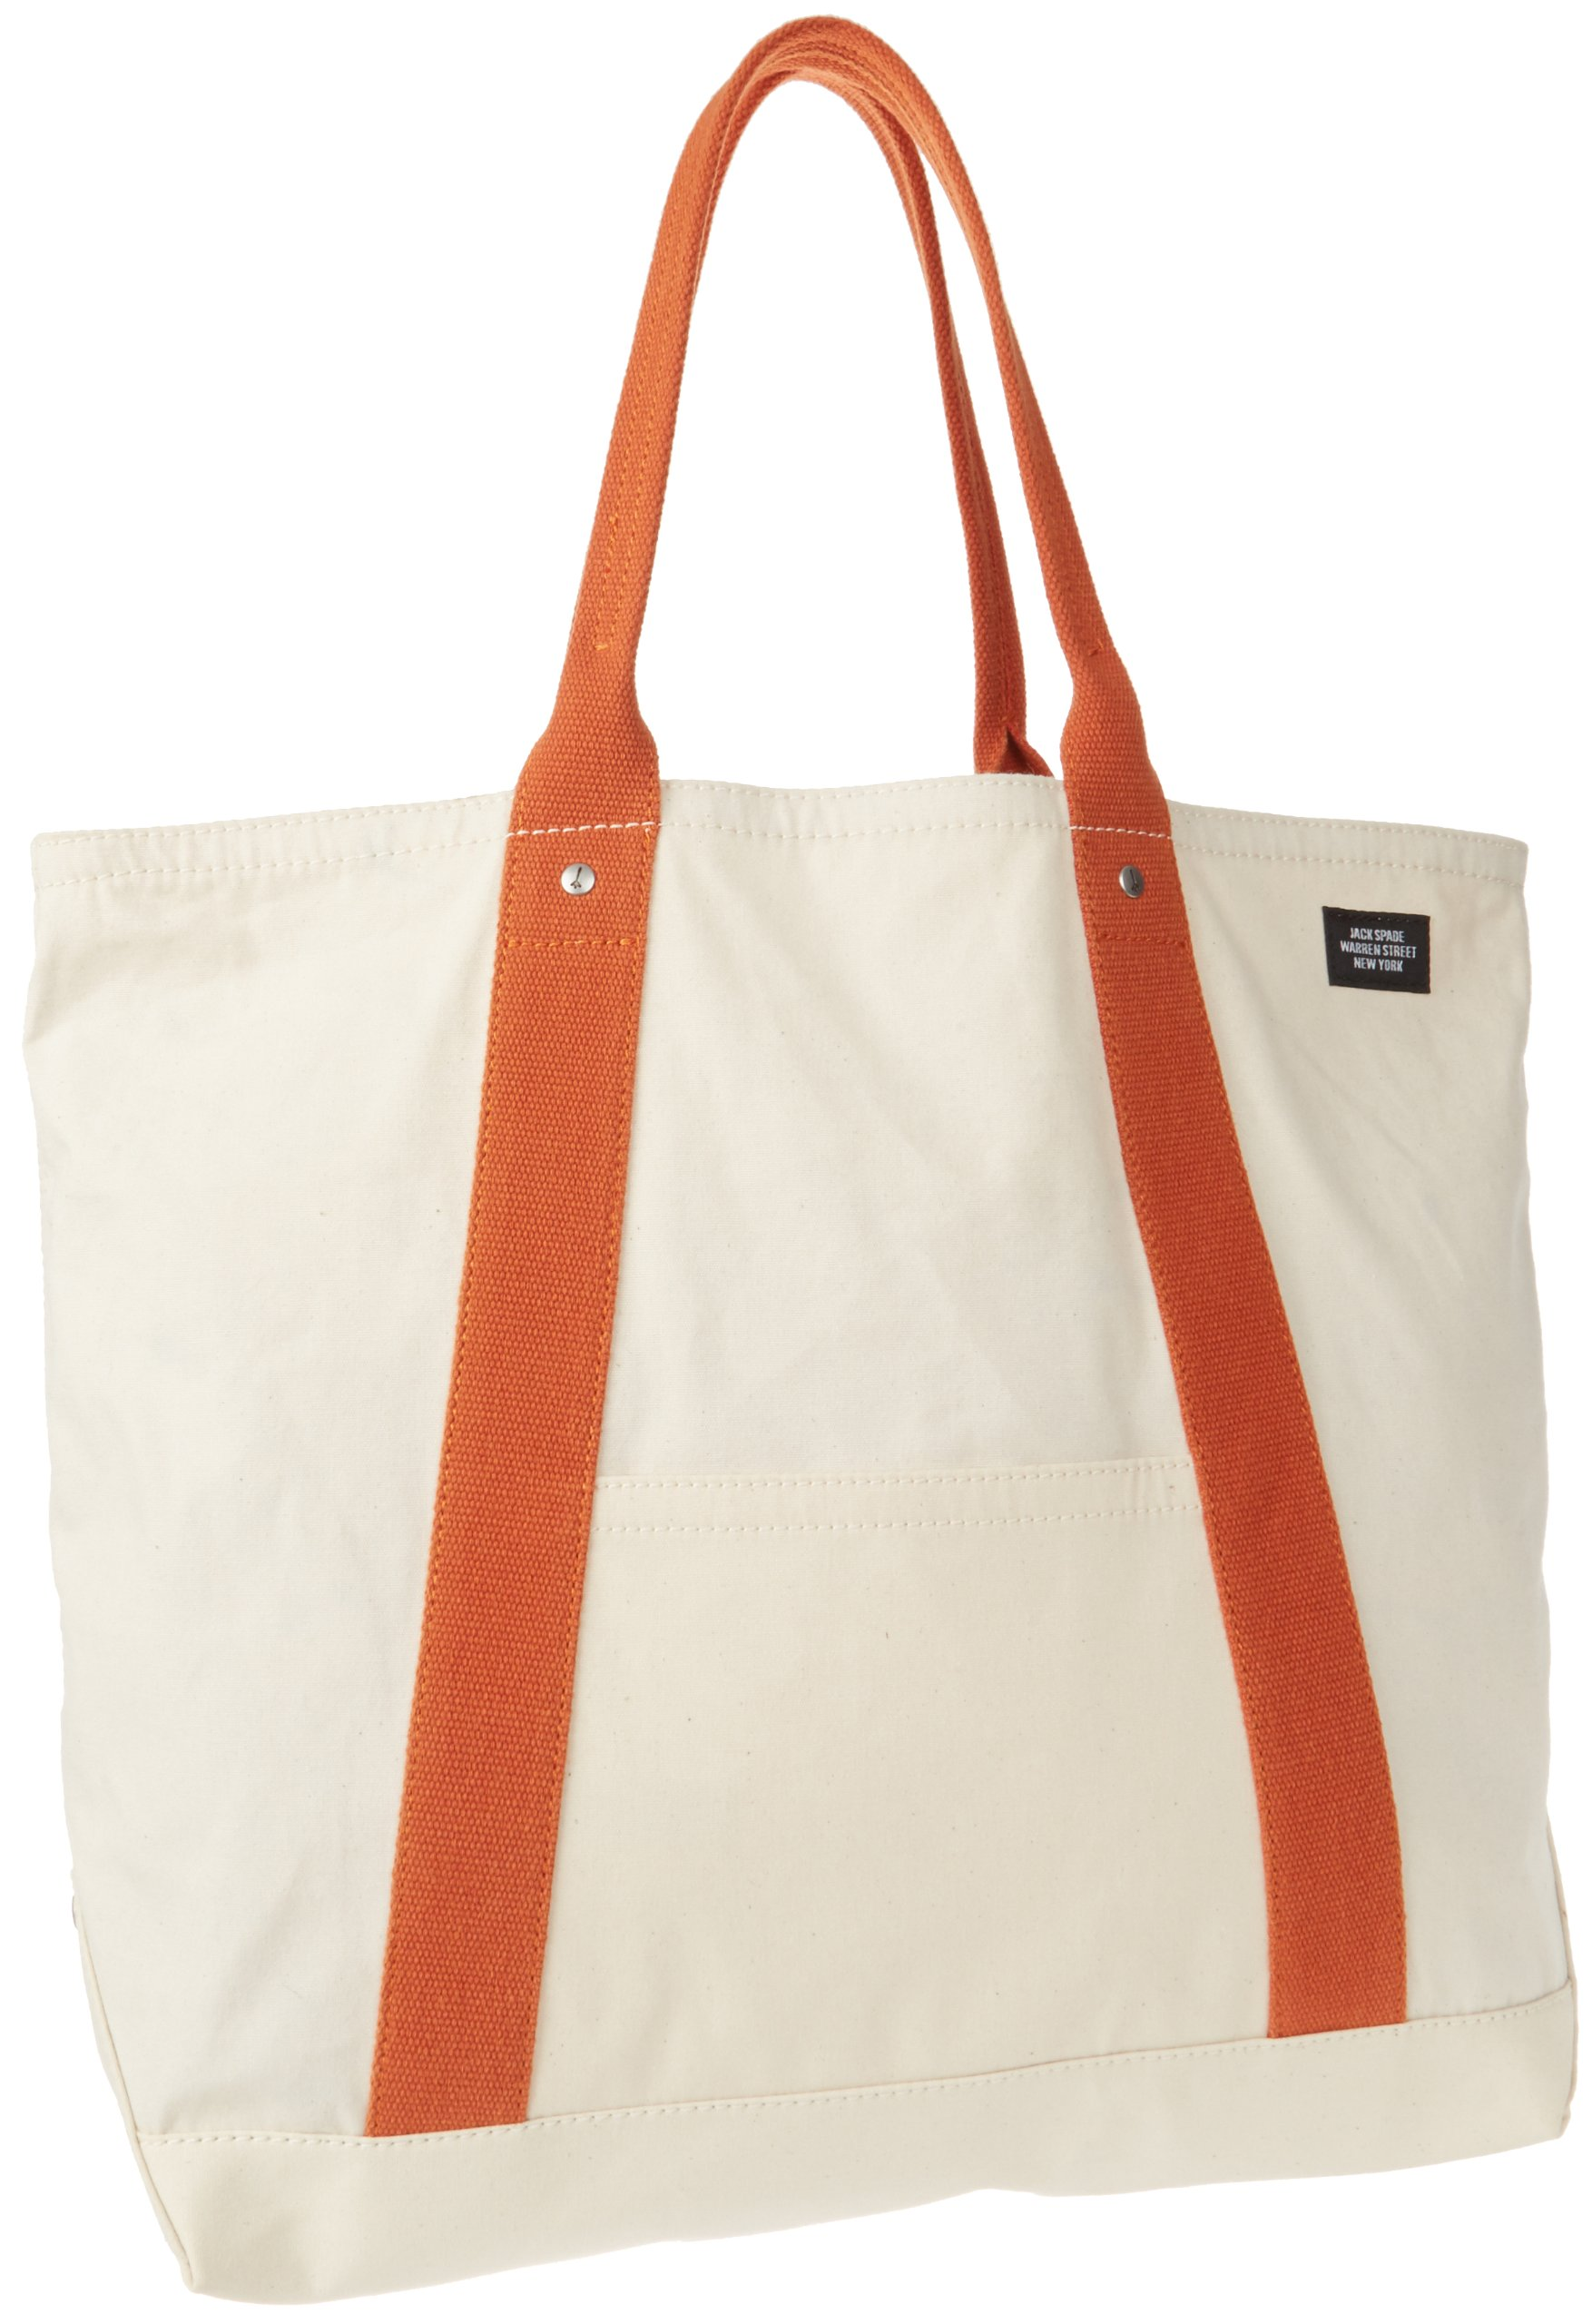 Jack Spade Reversible Dirty Beach Tote,Natural,One Size